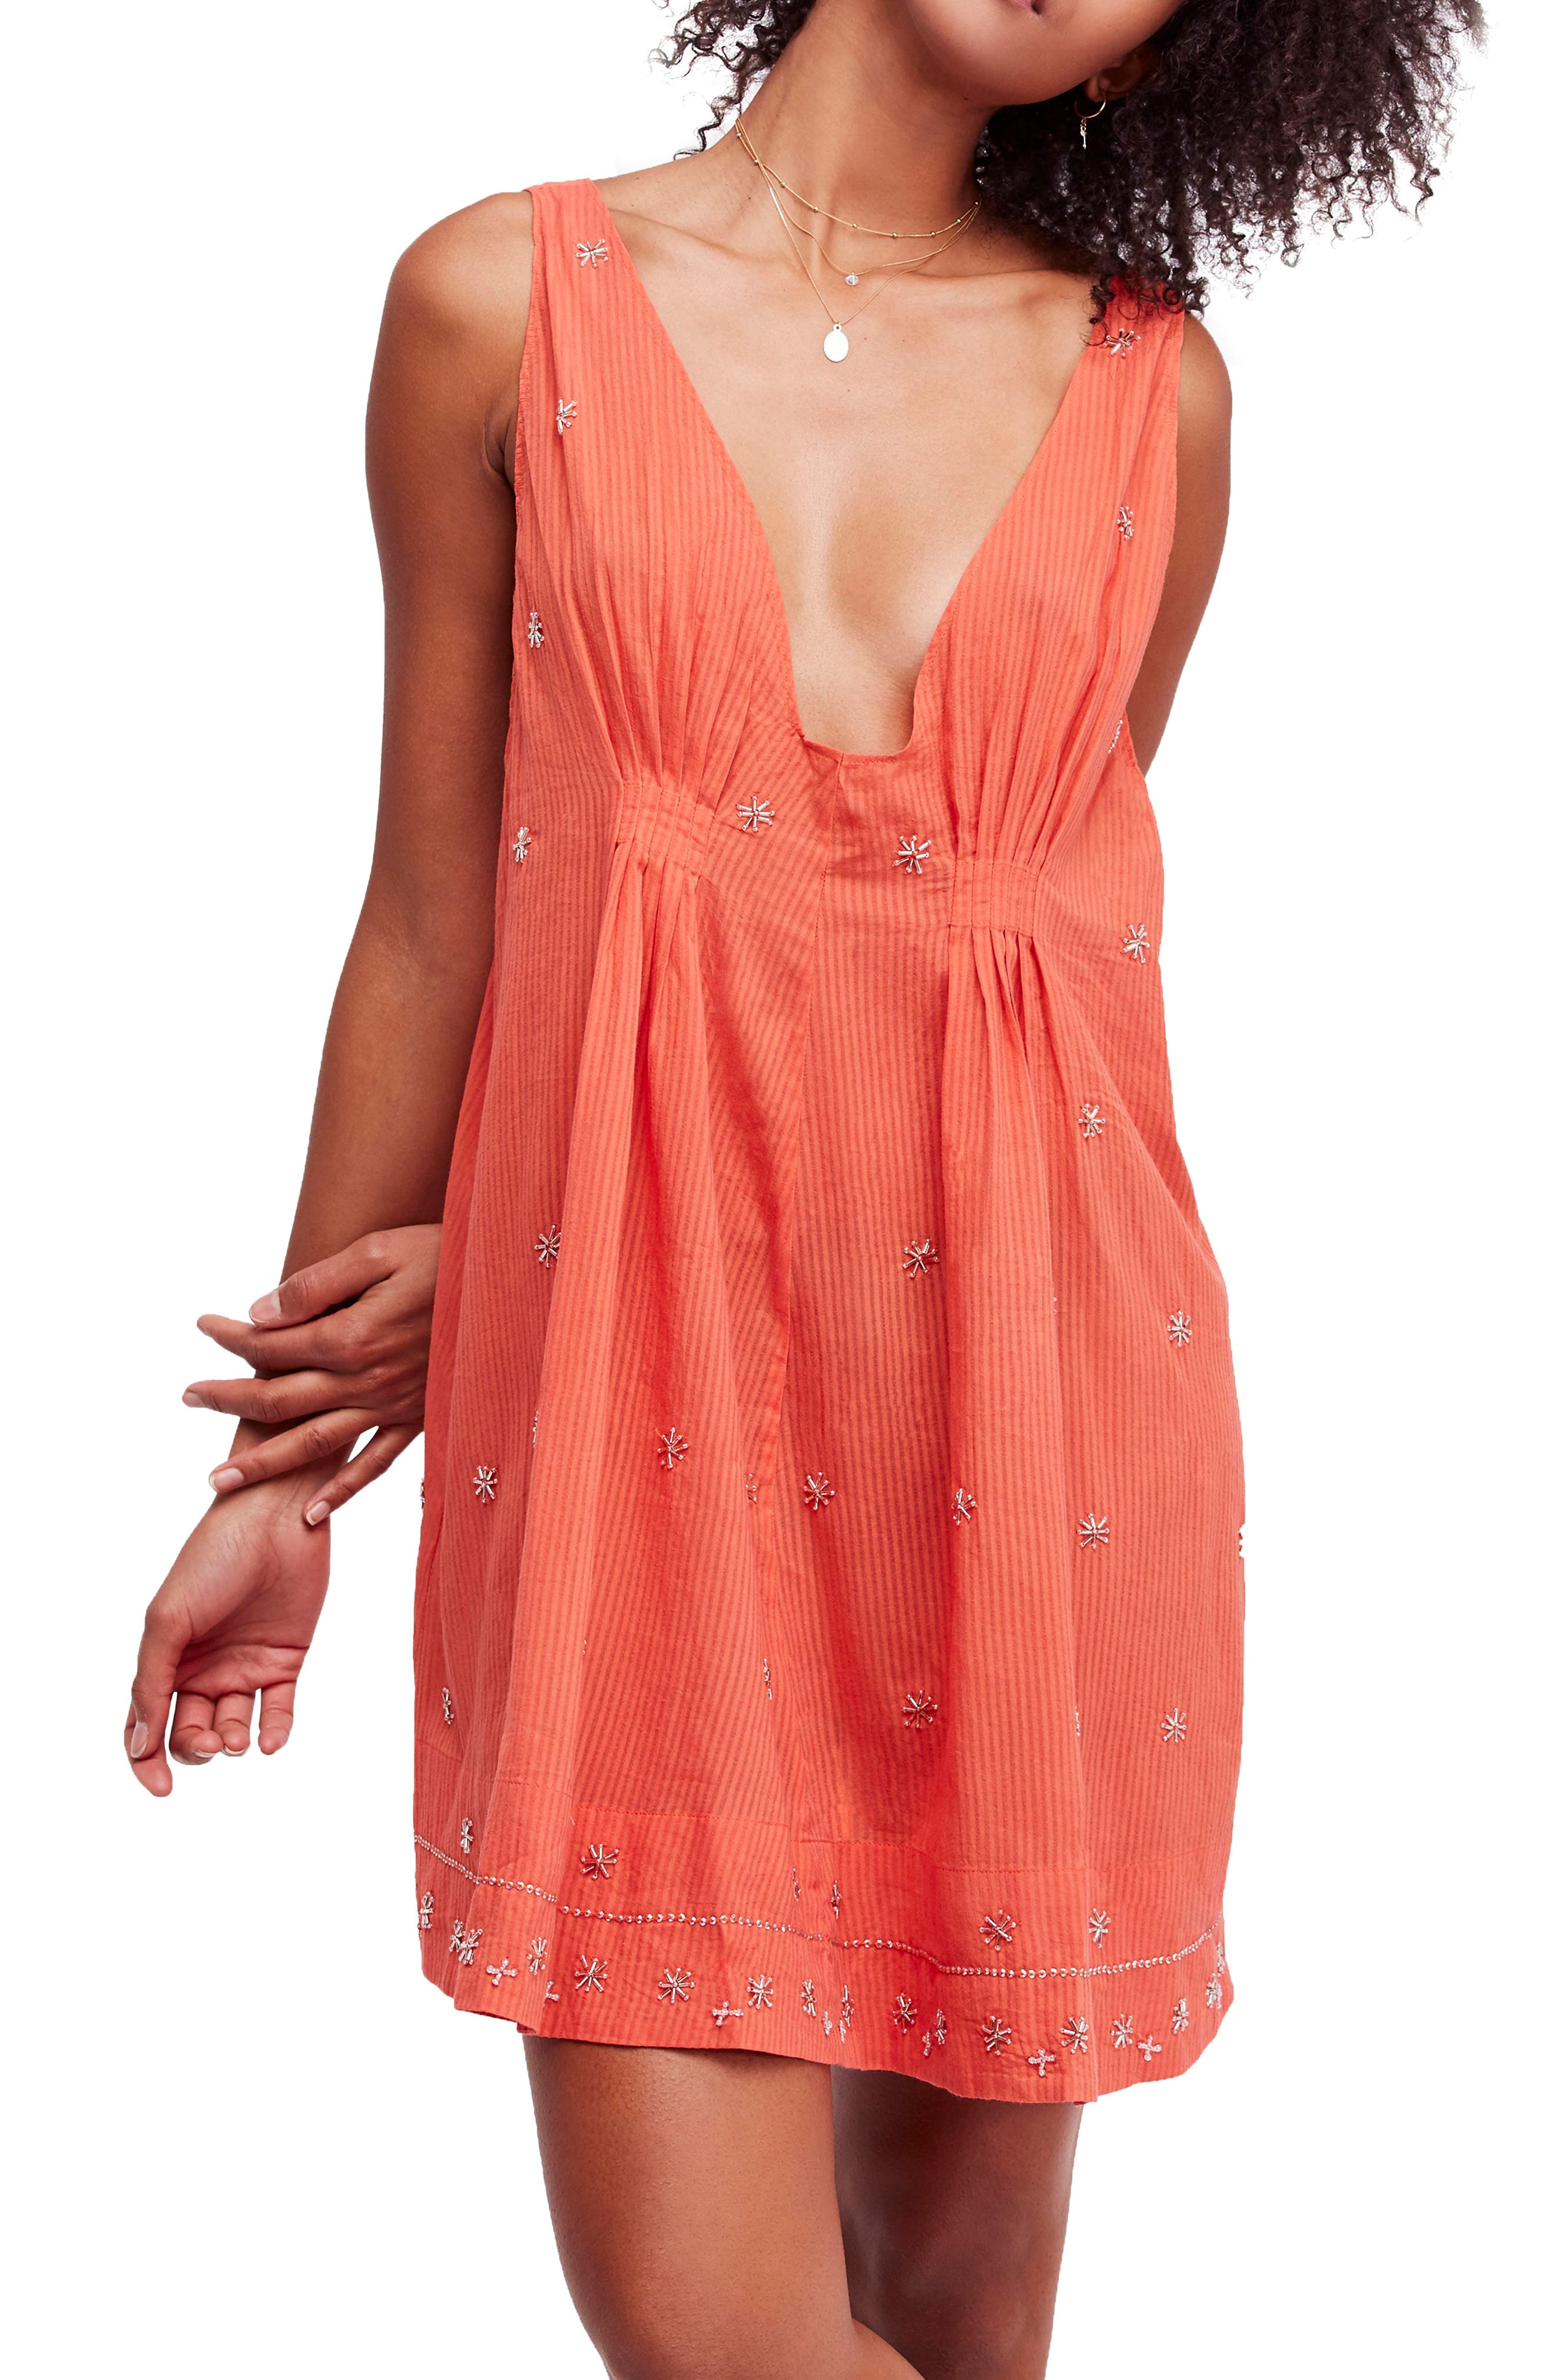 Crushin' on You Beaded Minidress,                         Main,                         color, Coral